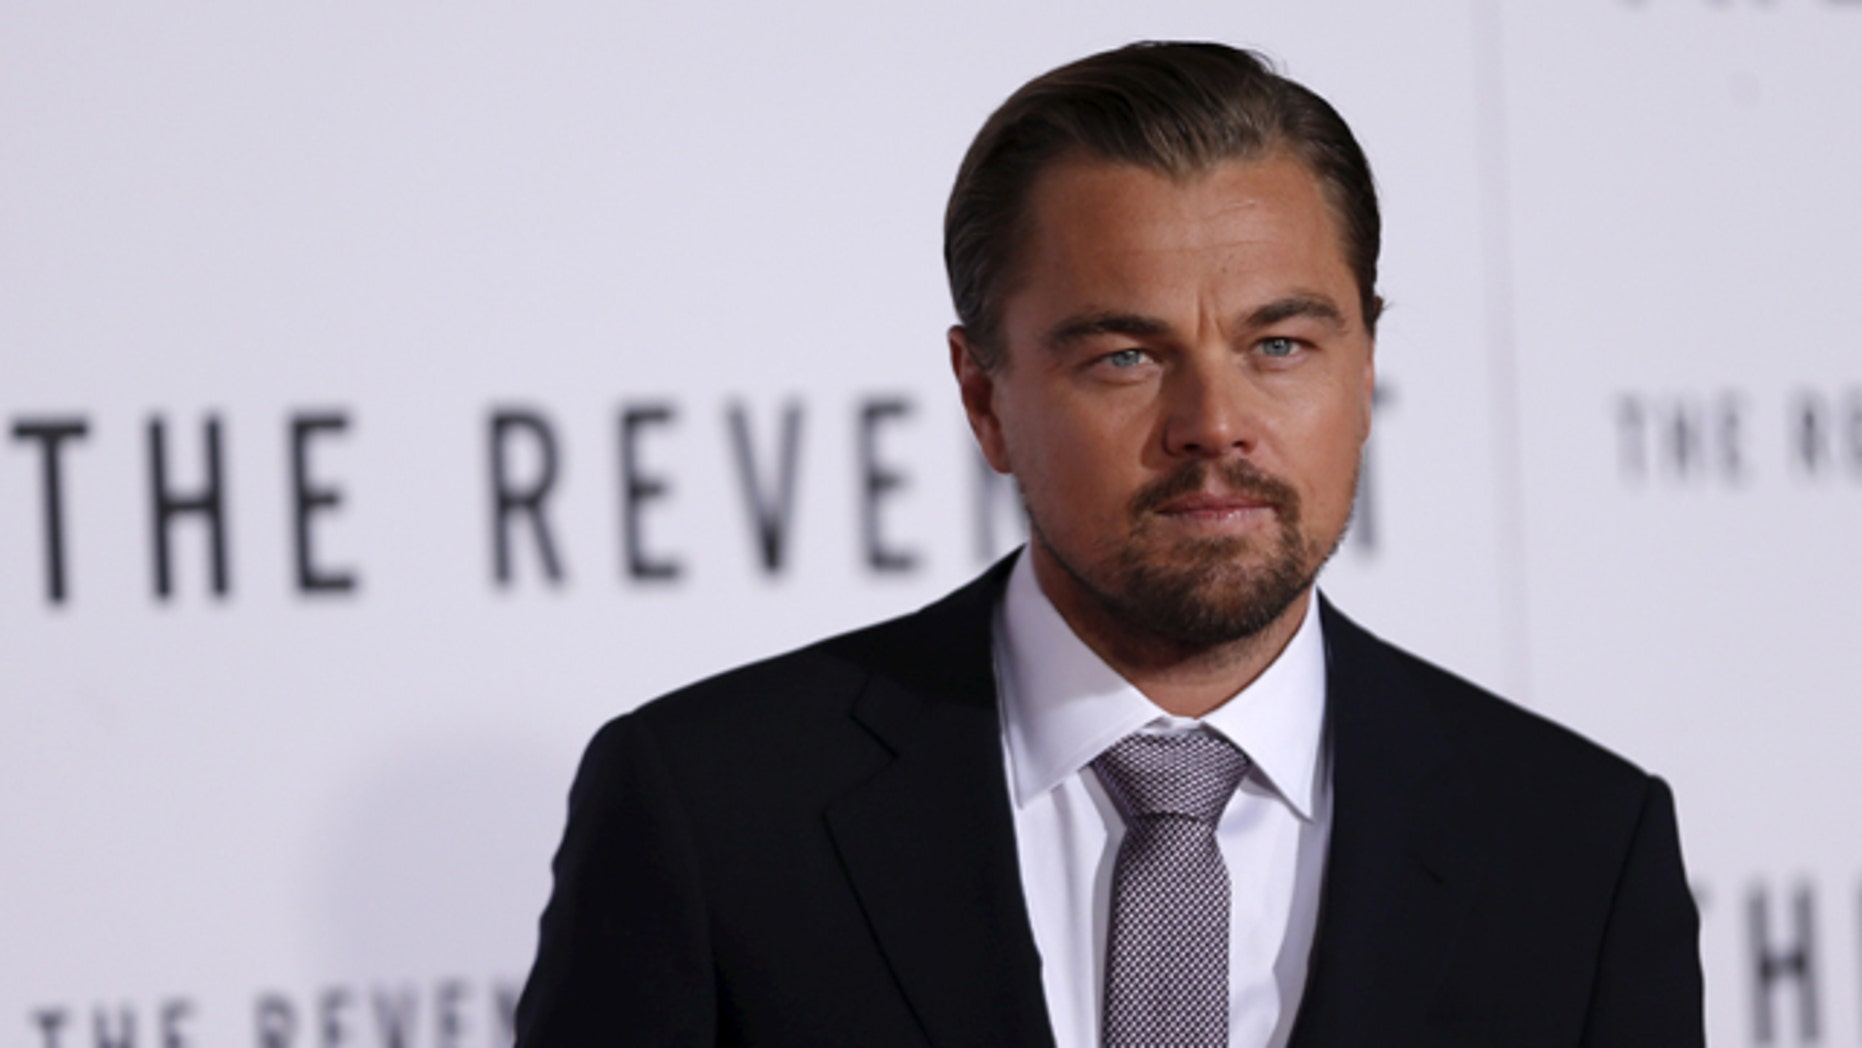 """Jan 8, 2016. Leonardo DiCaprio poses at the premiere of """"The Revenant"""" in Hollywood, CA."""